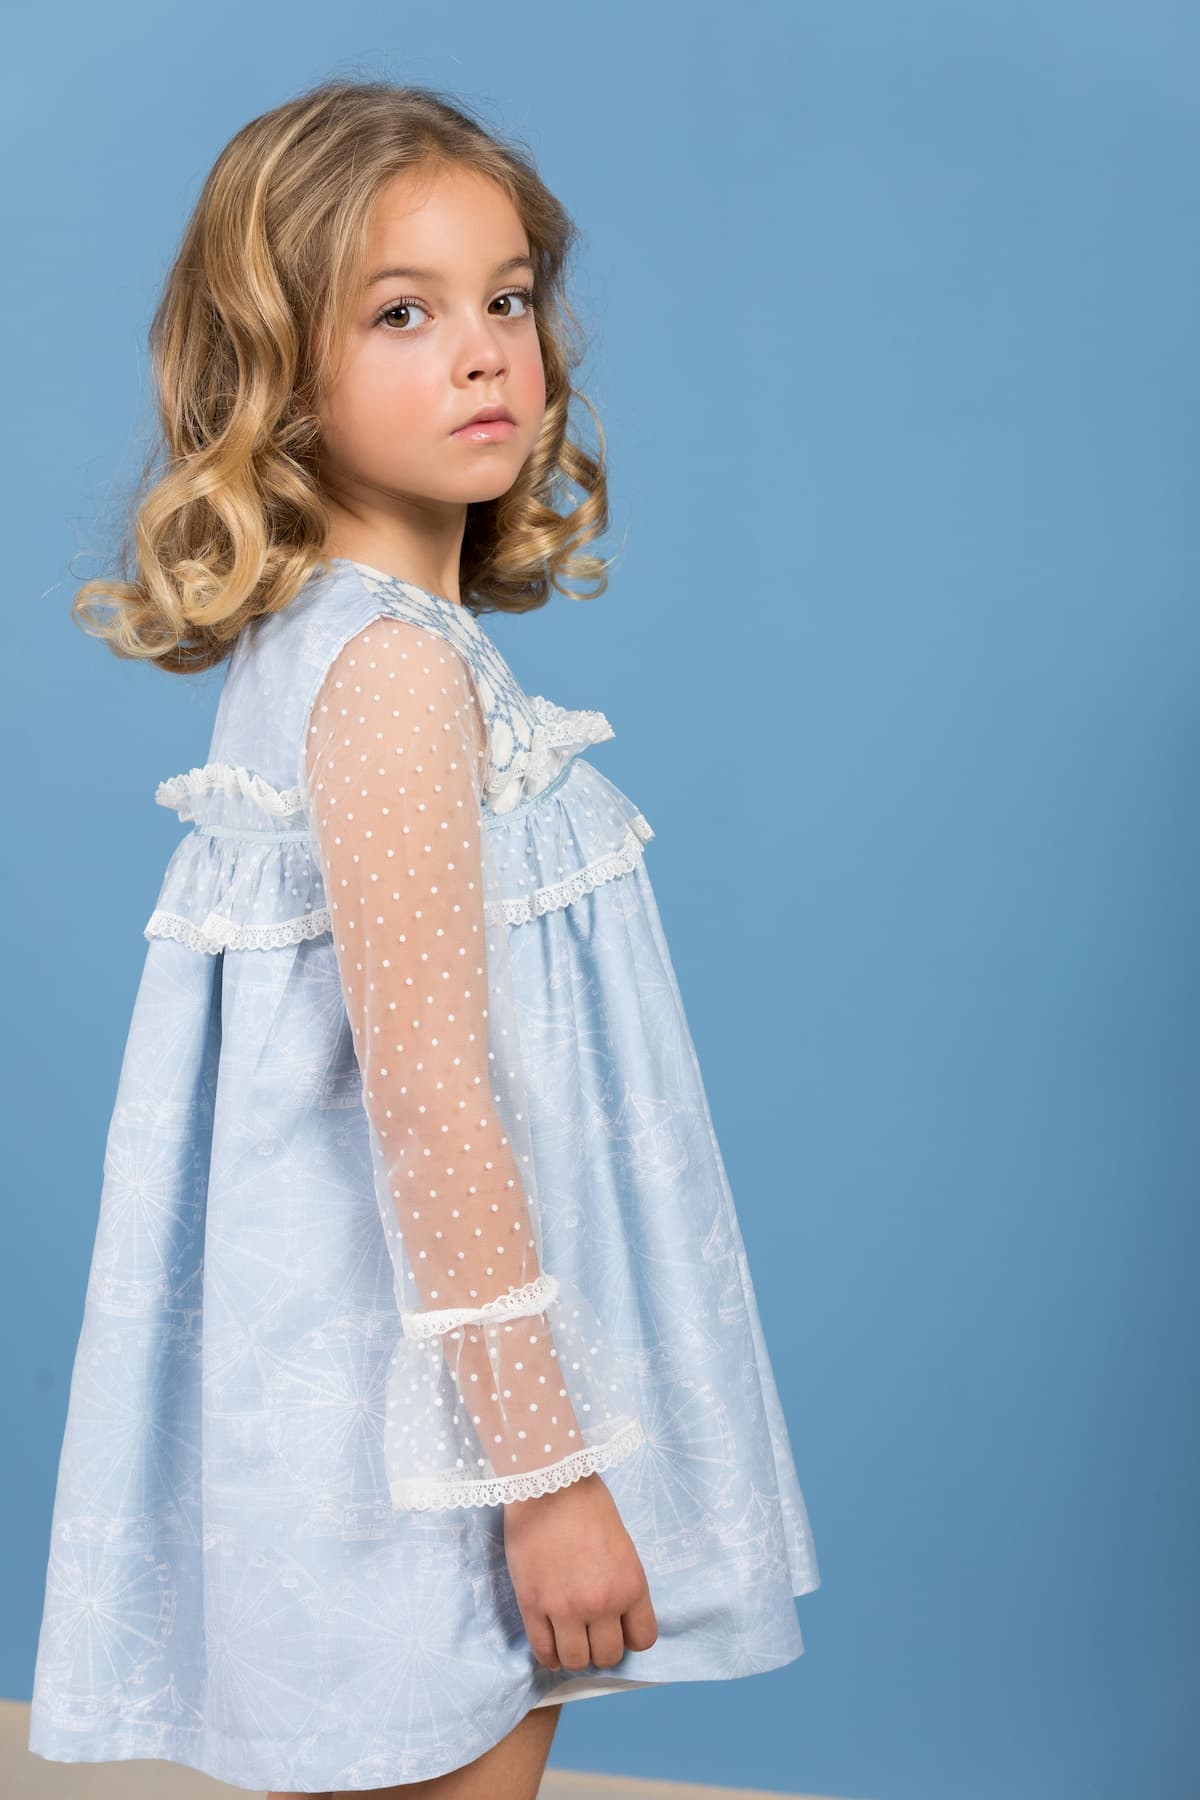 Marta & Paula: Design of Children's Fashion Clothes with Identity from the South